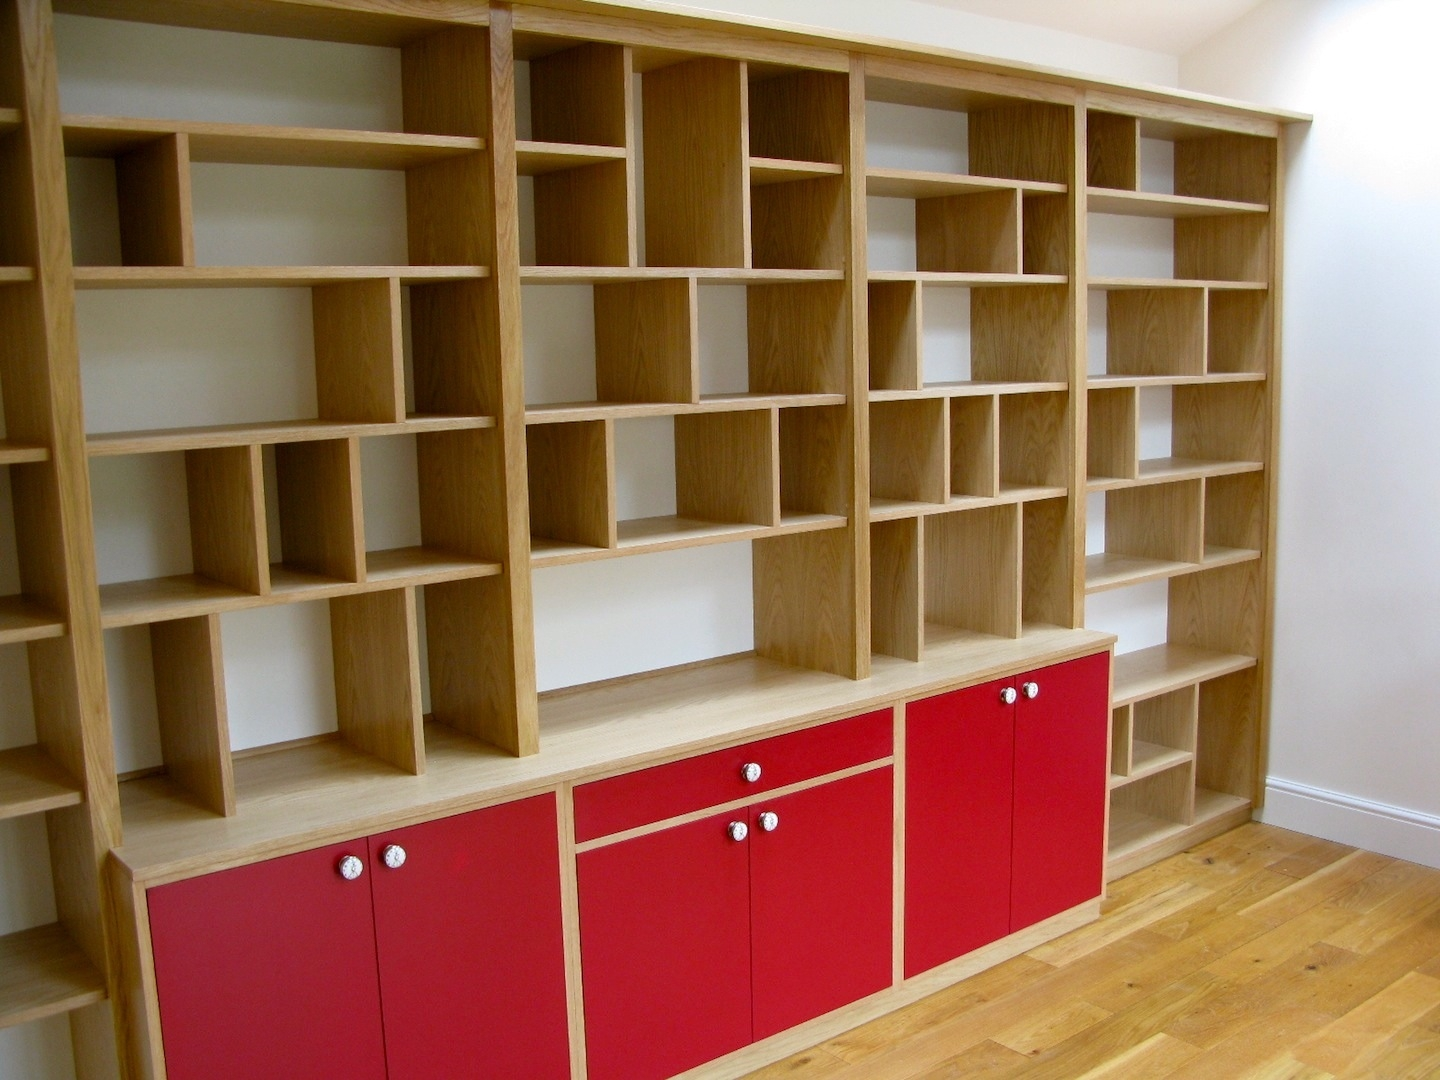 York Carpenters Cabinet Makers Fern Manor Martin Smith For Bespoke Bookshelves (#14 of 14)